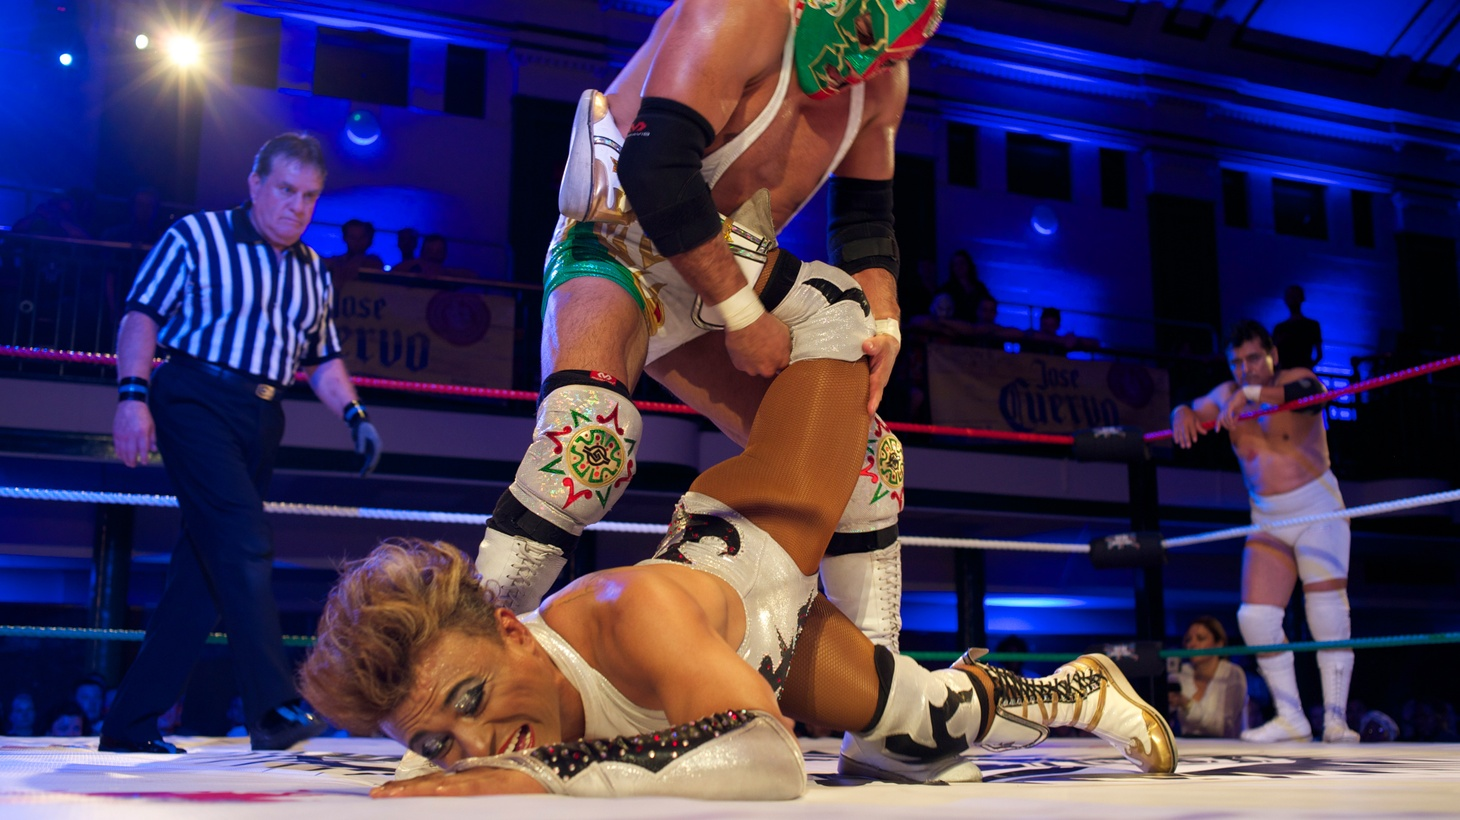 Into the hyper-masculinized world of Mexican wrestling steps Cassandro, an unapologetically gay man whose 27-year-career exploded traditional ideas of what it means to be a lucha libre fighter.